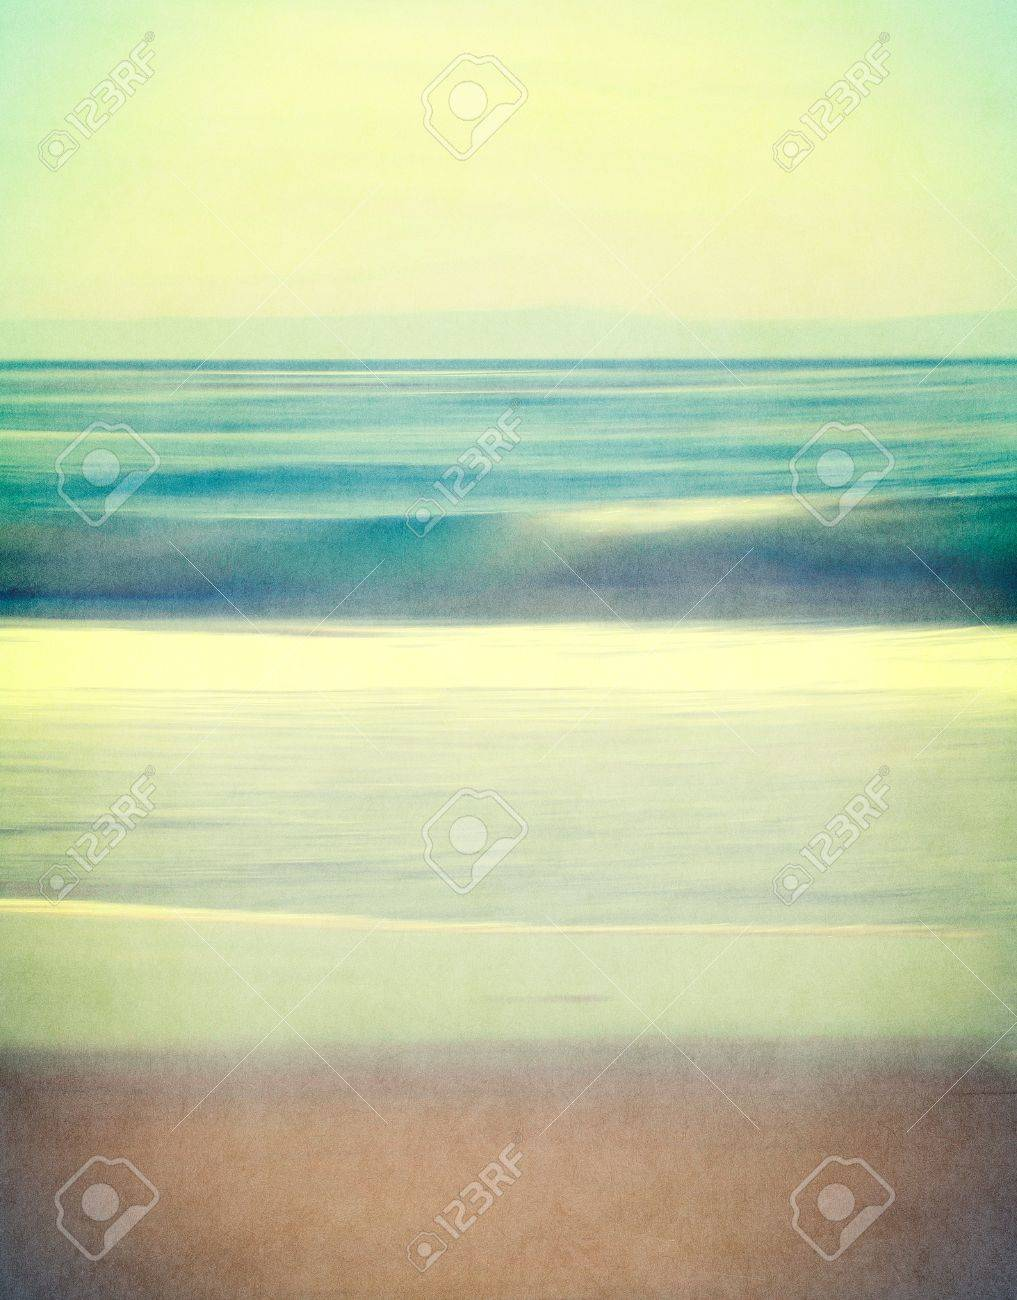 An abstract ocean seascape with blurred panning motion.  Image displays a retro, vintage look with cross-processed colors and a finely textured paper grain. Stock Photo - 21696636